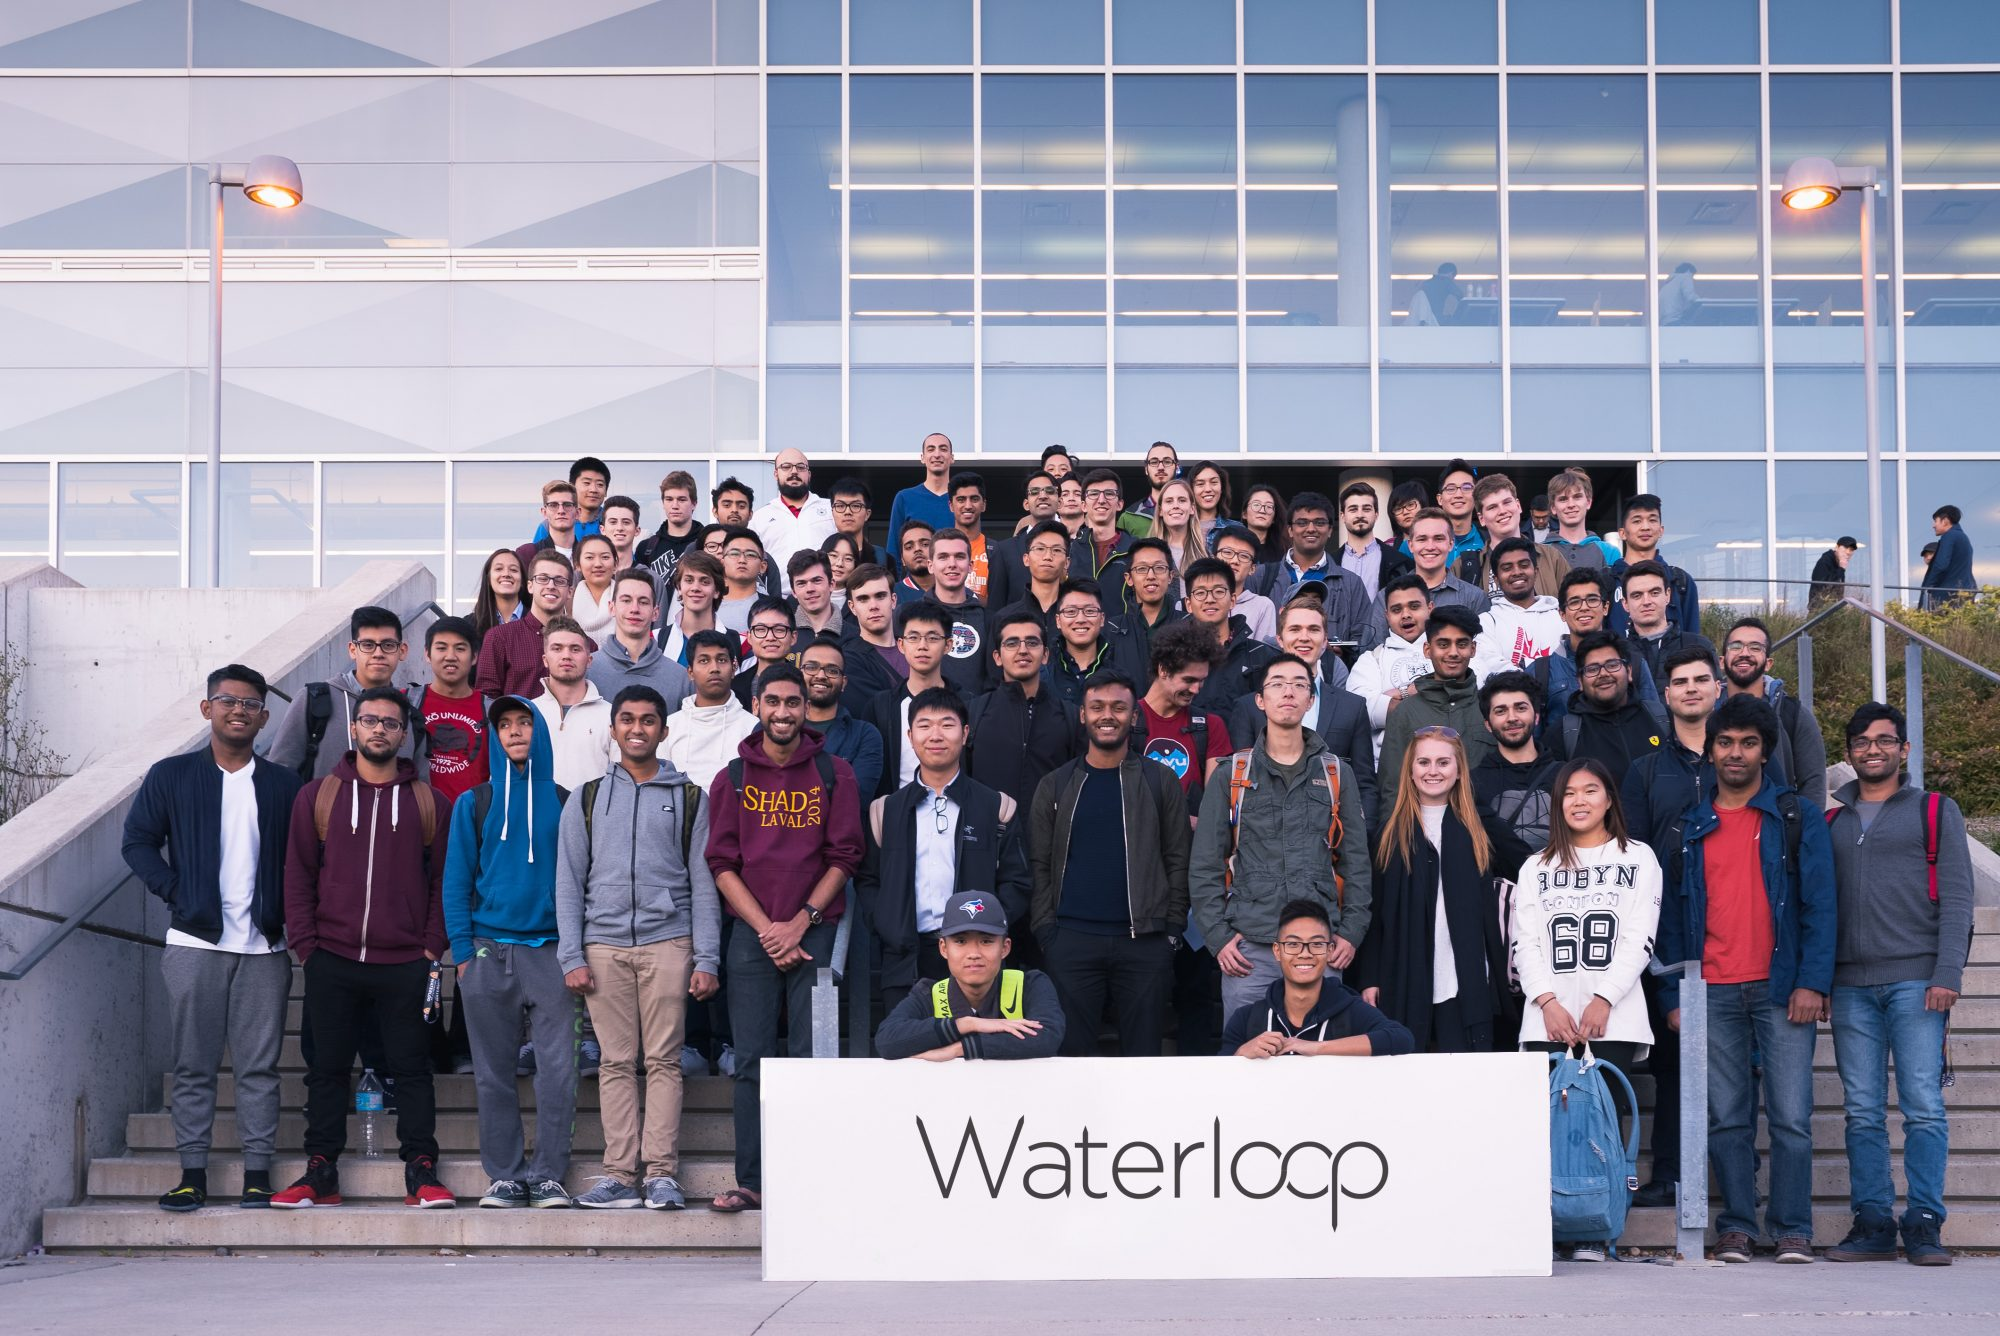 waterloopteamphoto